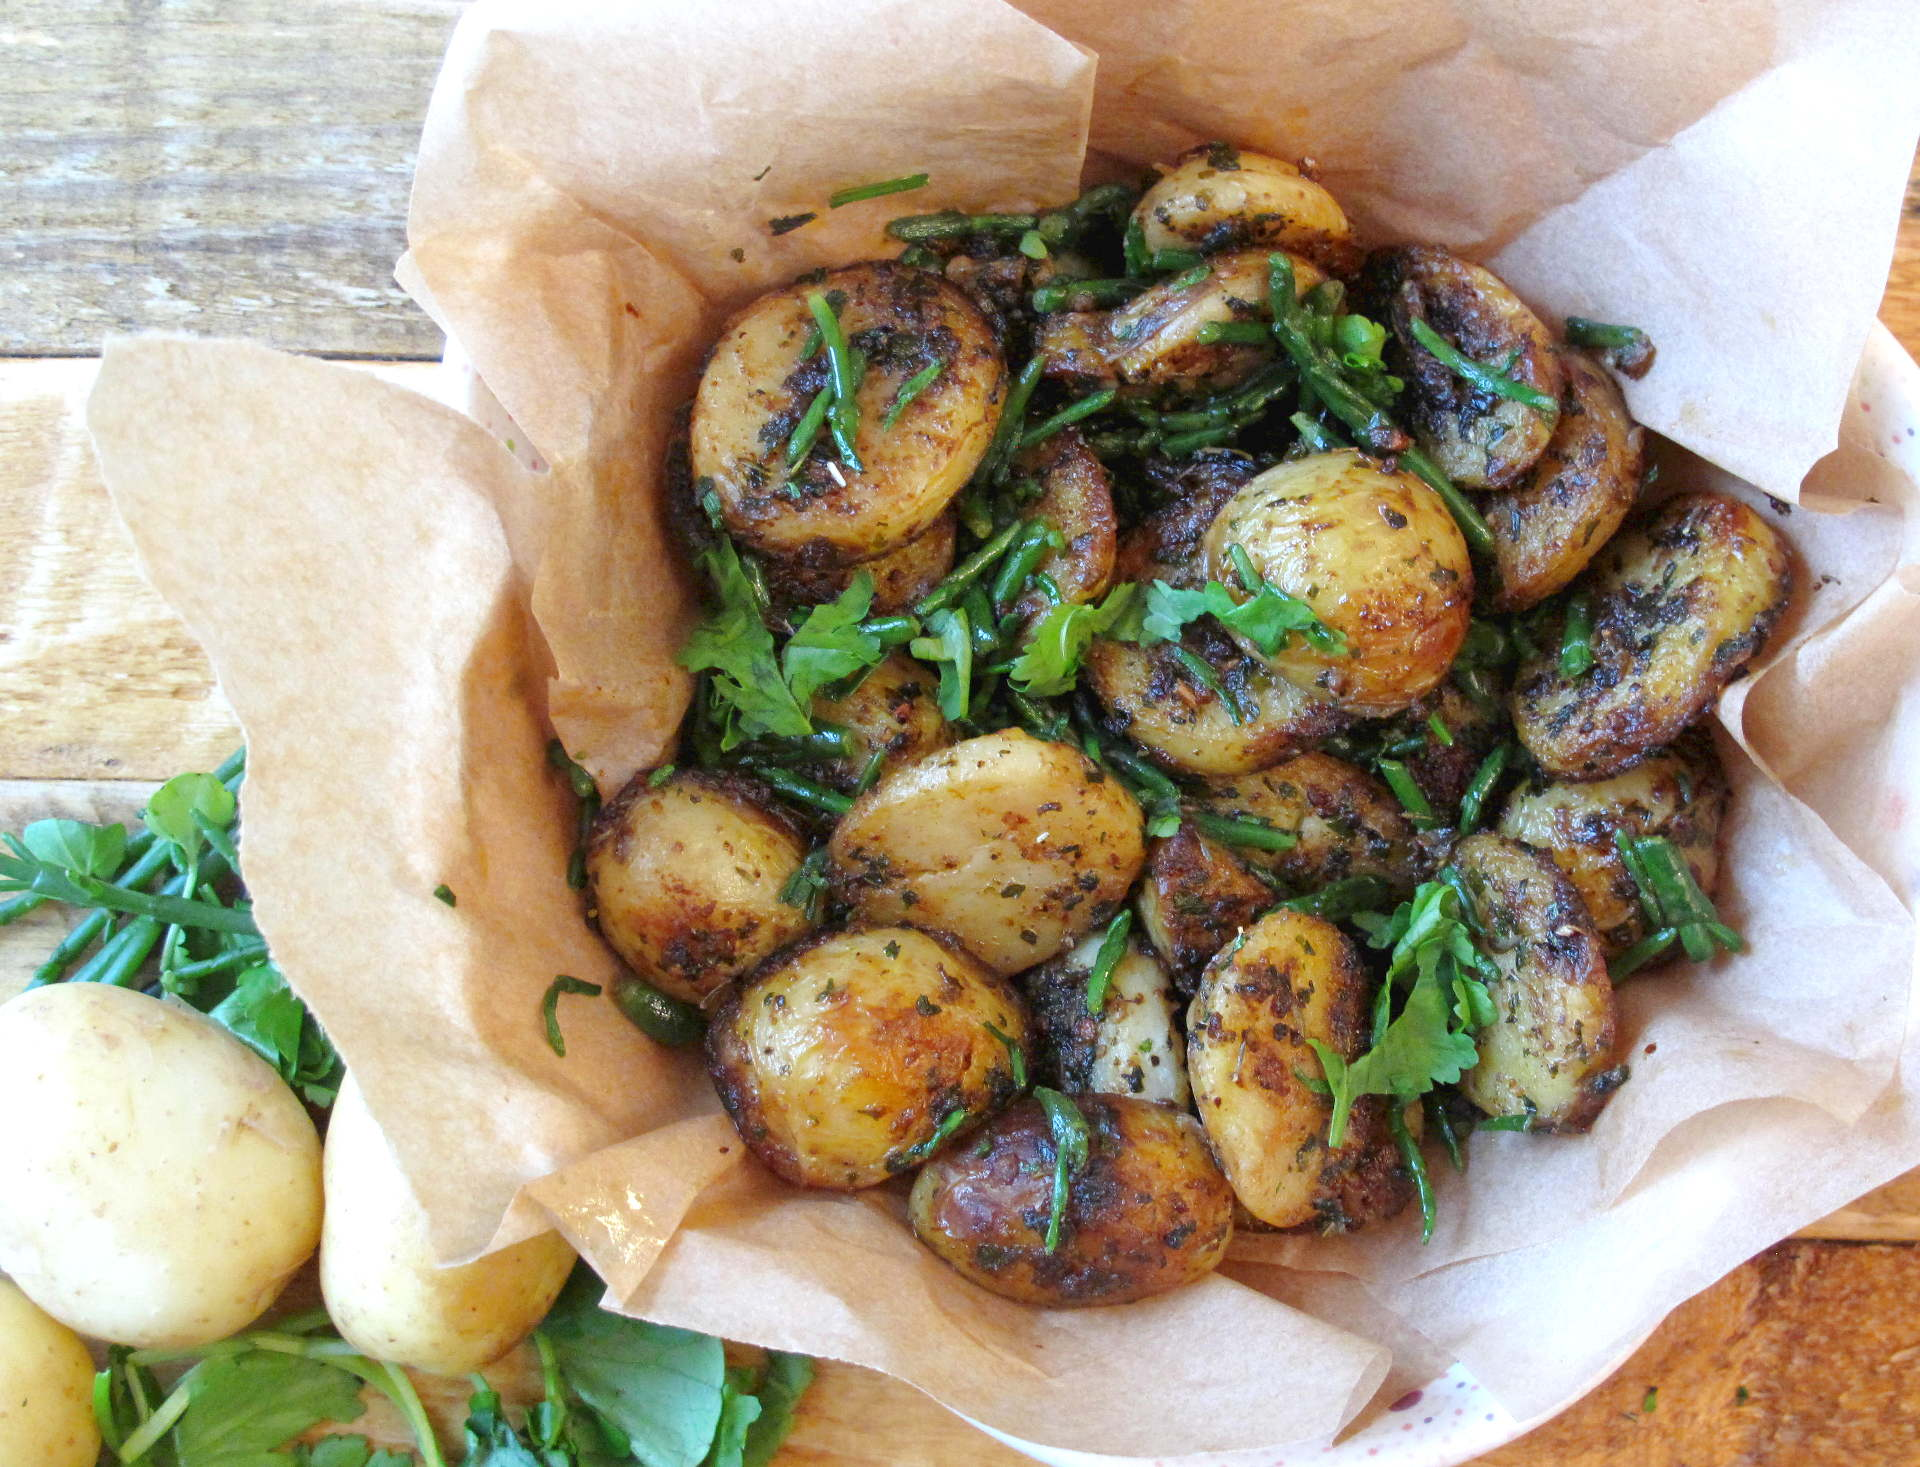 Garlic & Herb Sautéed Potatoes With Samphire